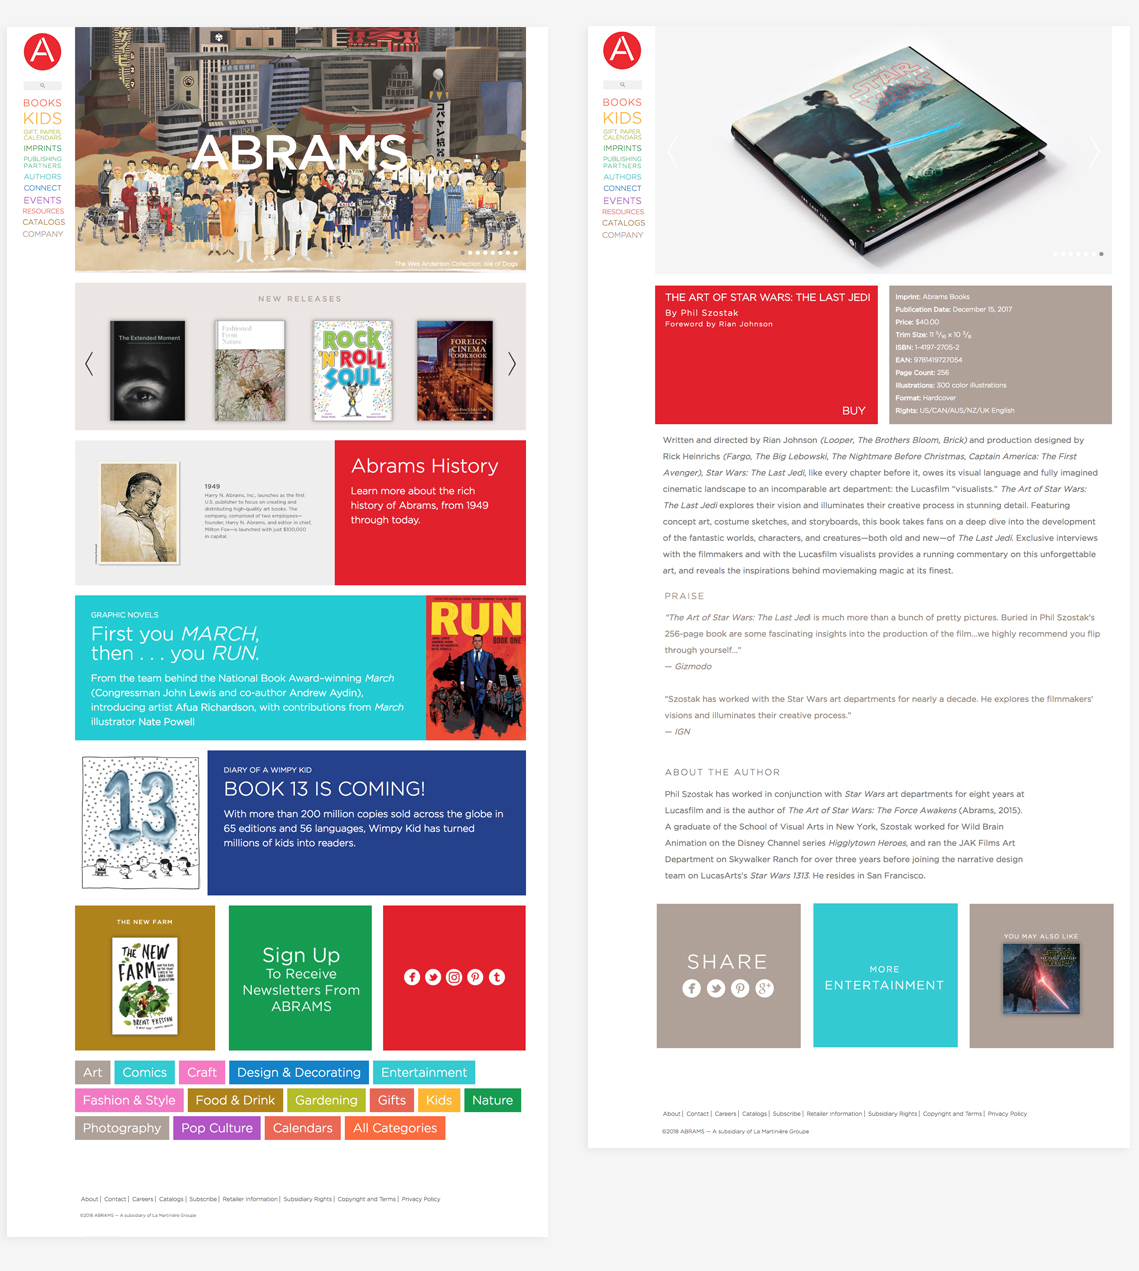 Details of the Abrams website design